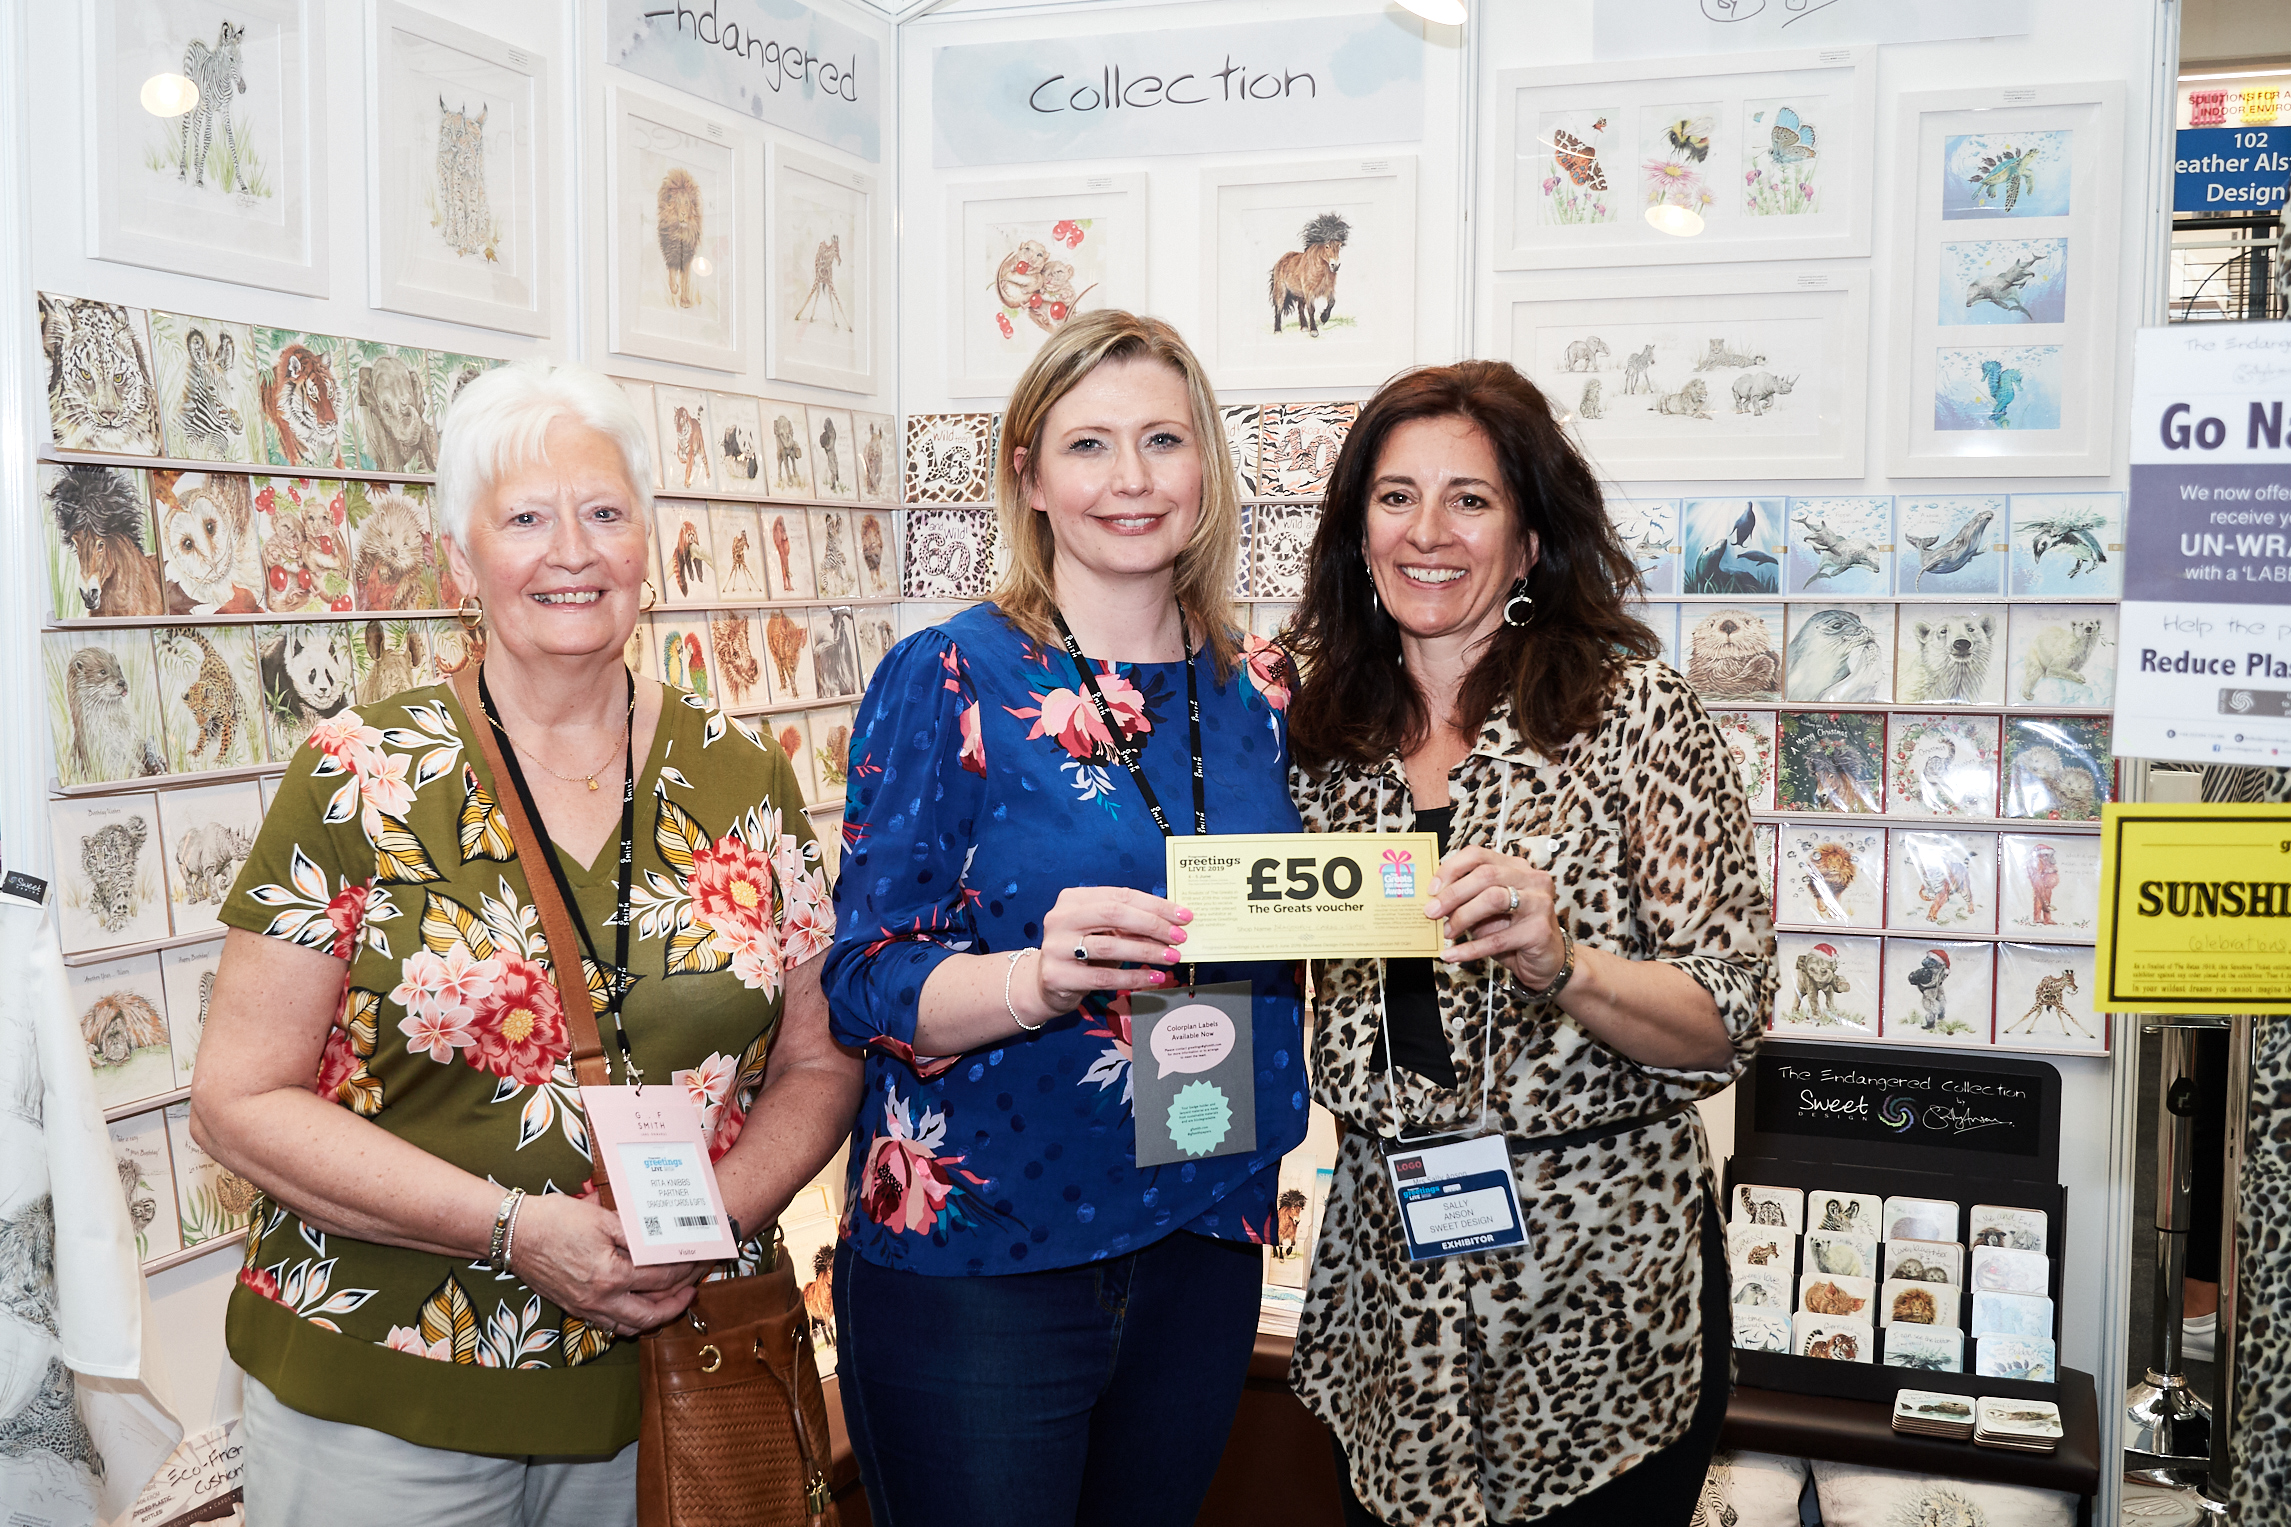 Above: Dragonfly Cards and Gifts' Rachael Barnes (right) and Rita Knibbs (left) with Sally Anson, founder of Sweet Design.